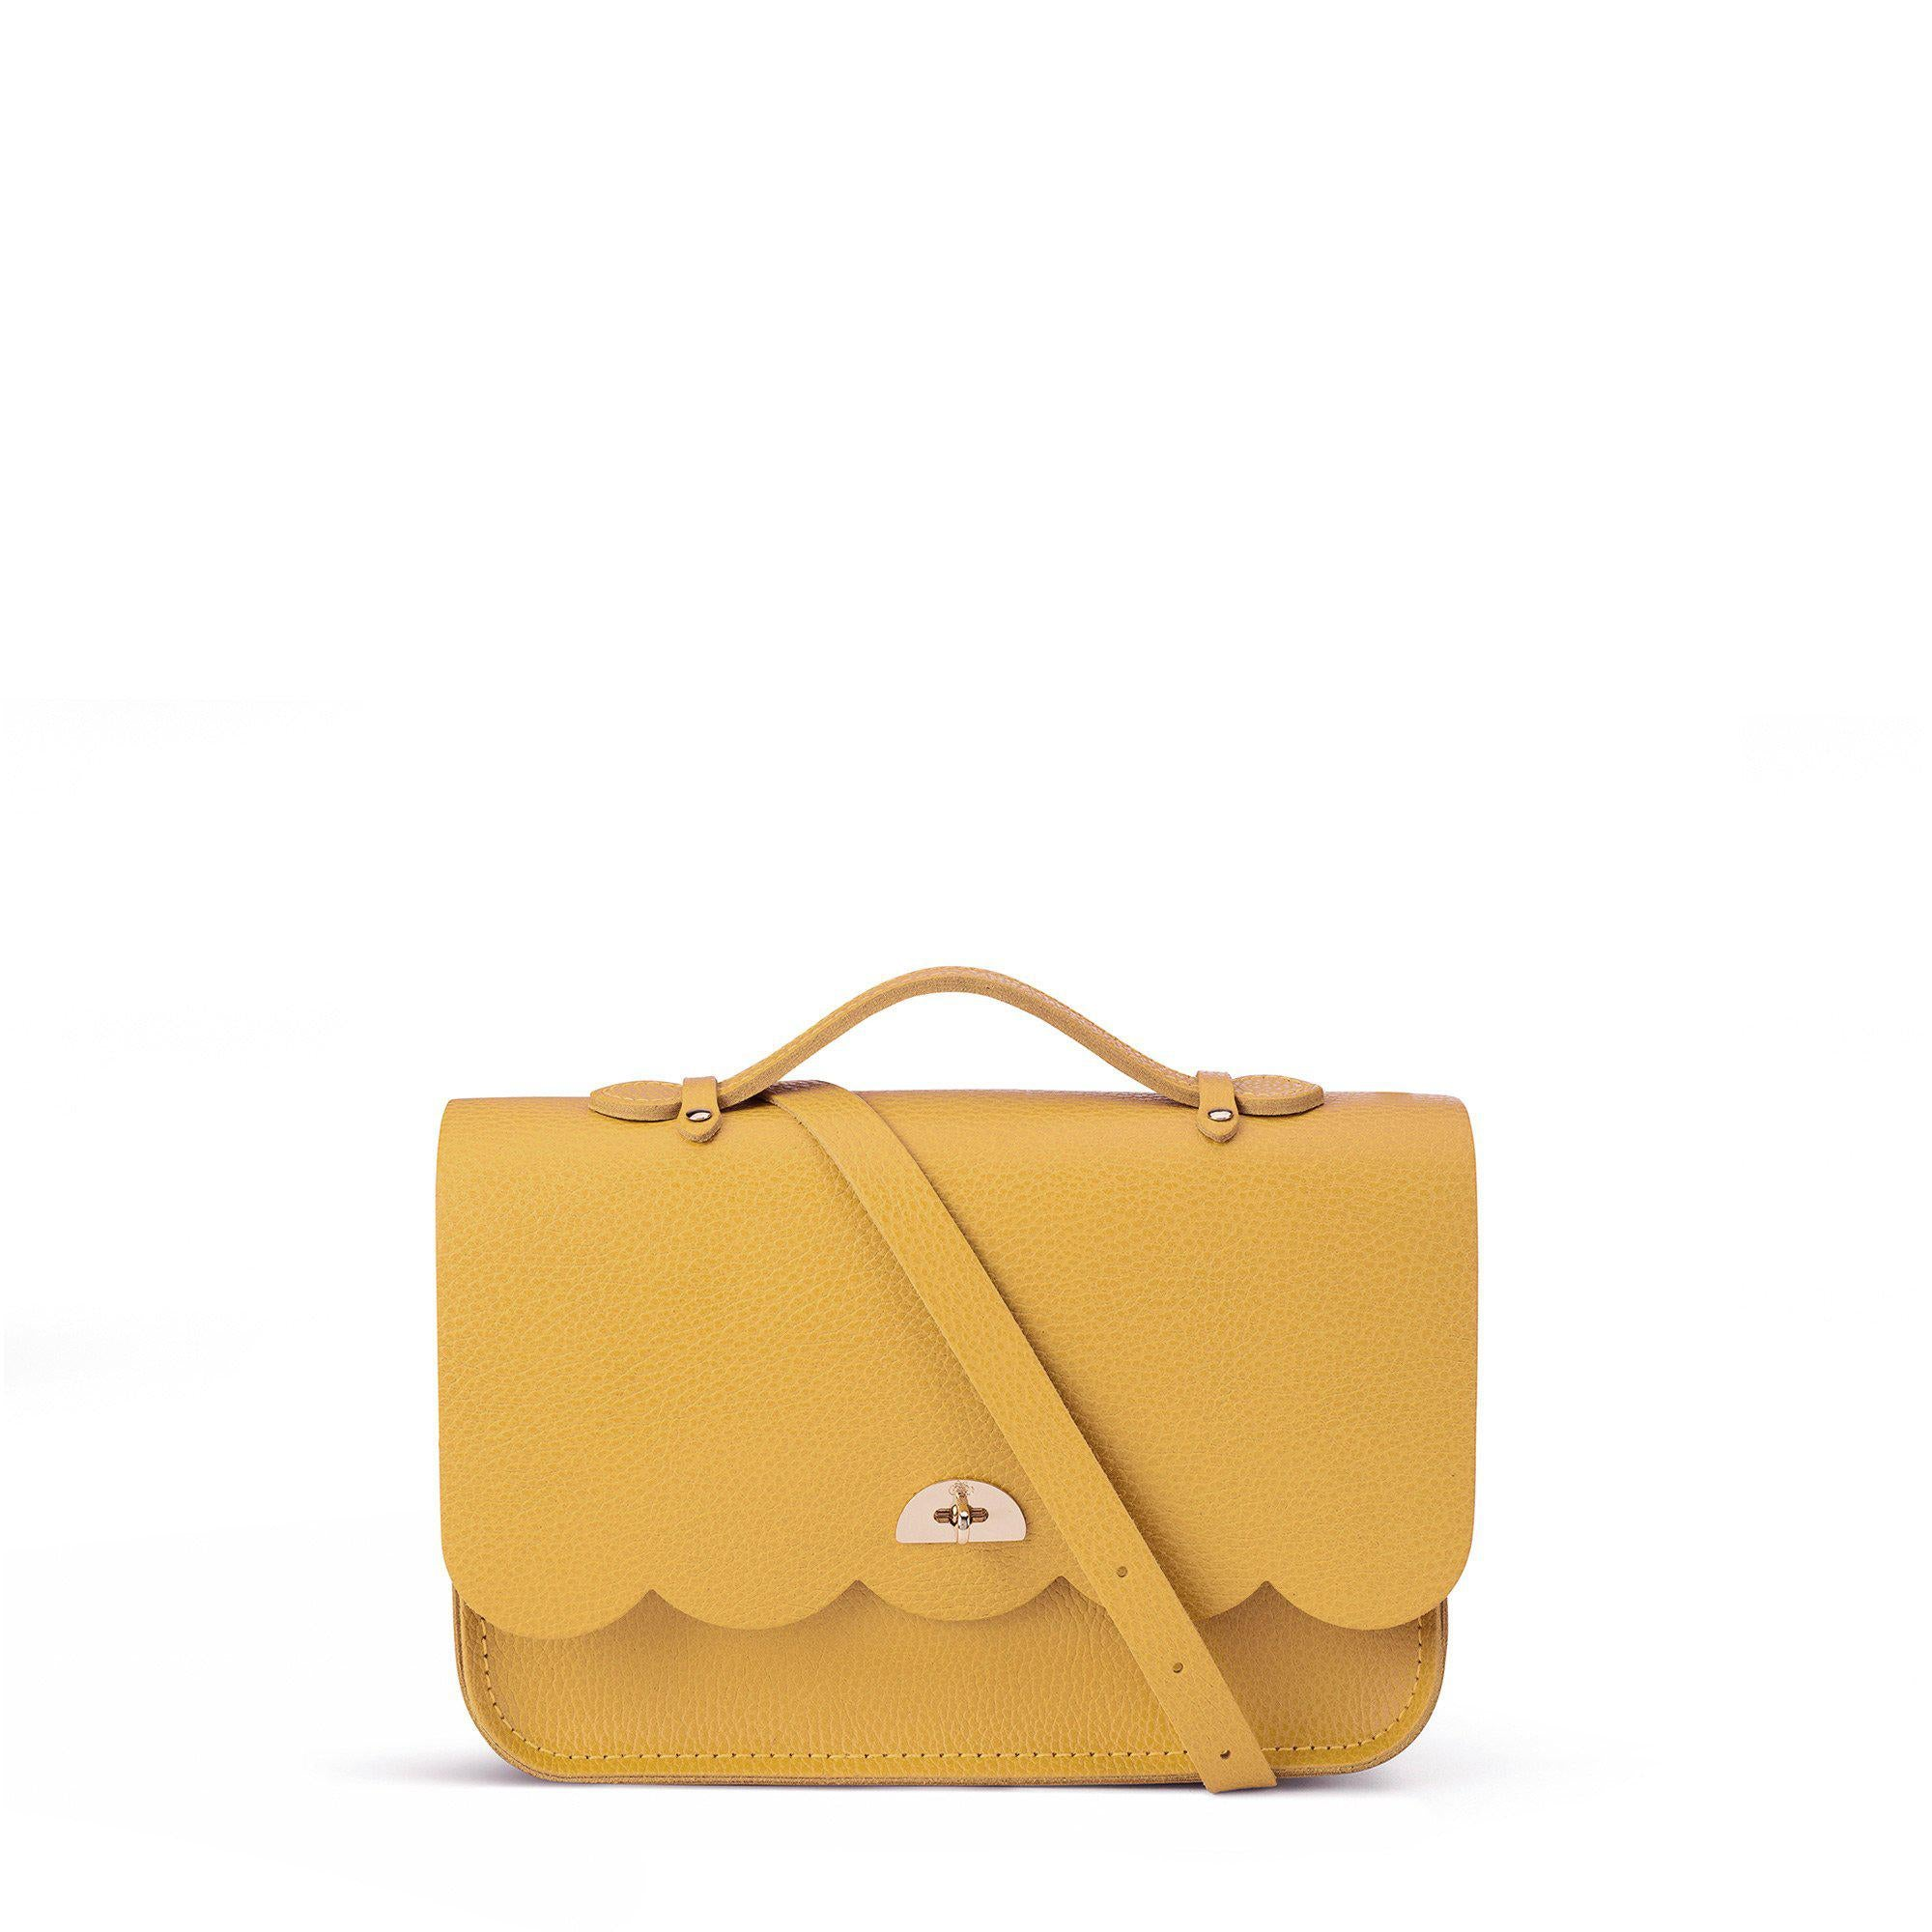 Cloud Bag with Handle in Grain Leather - Matte Indian Yellow Grain